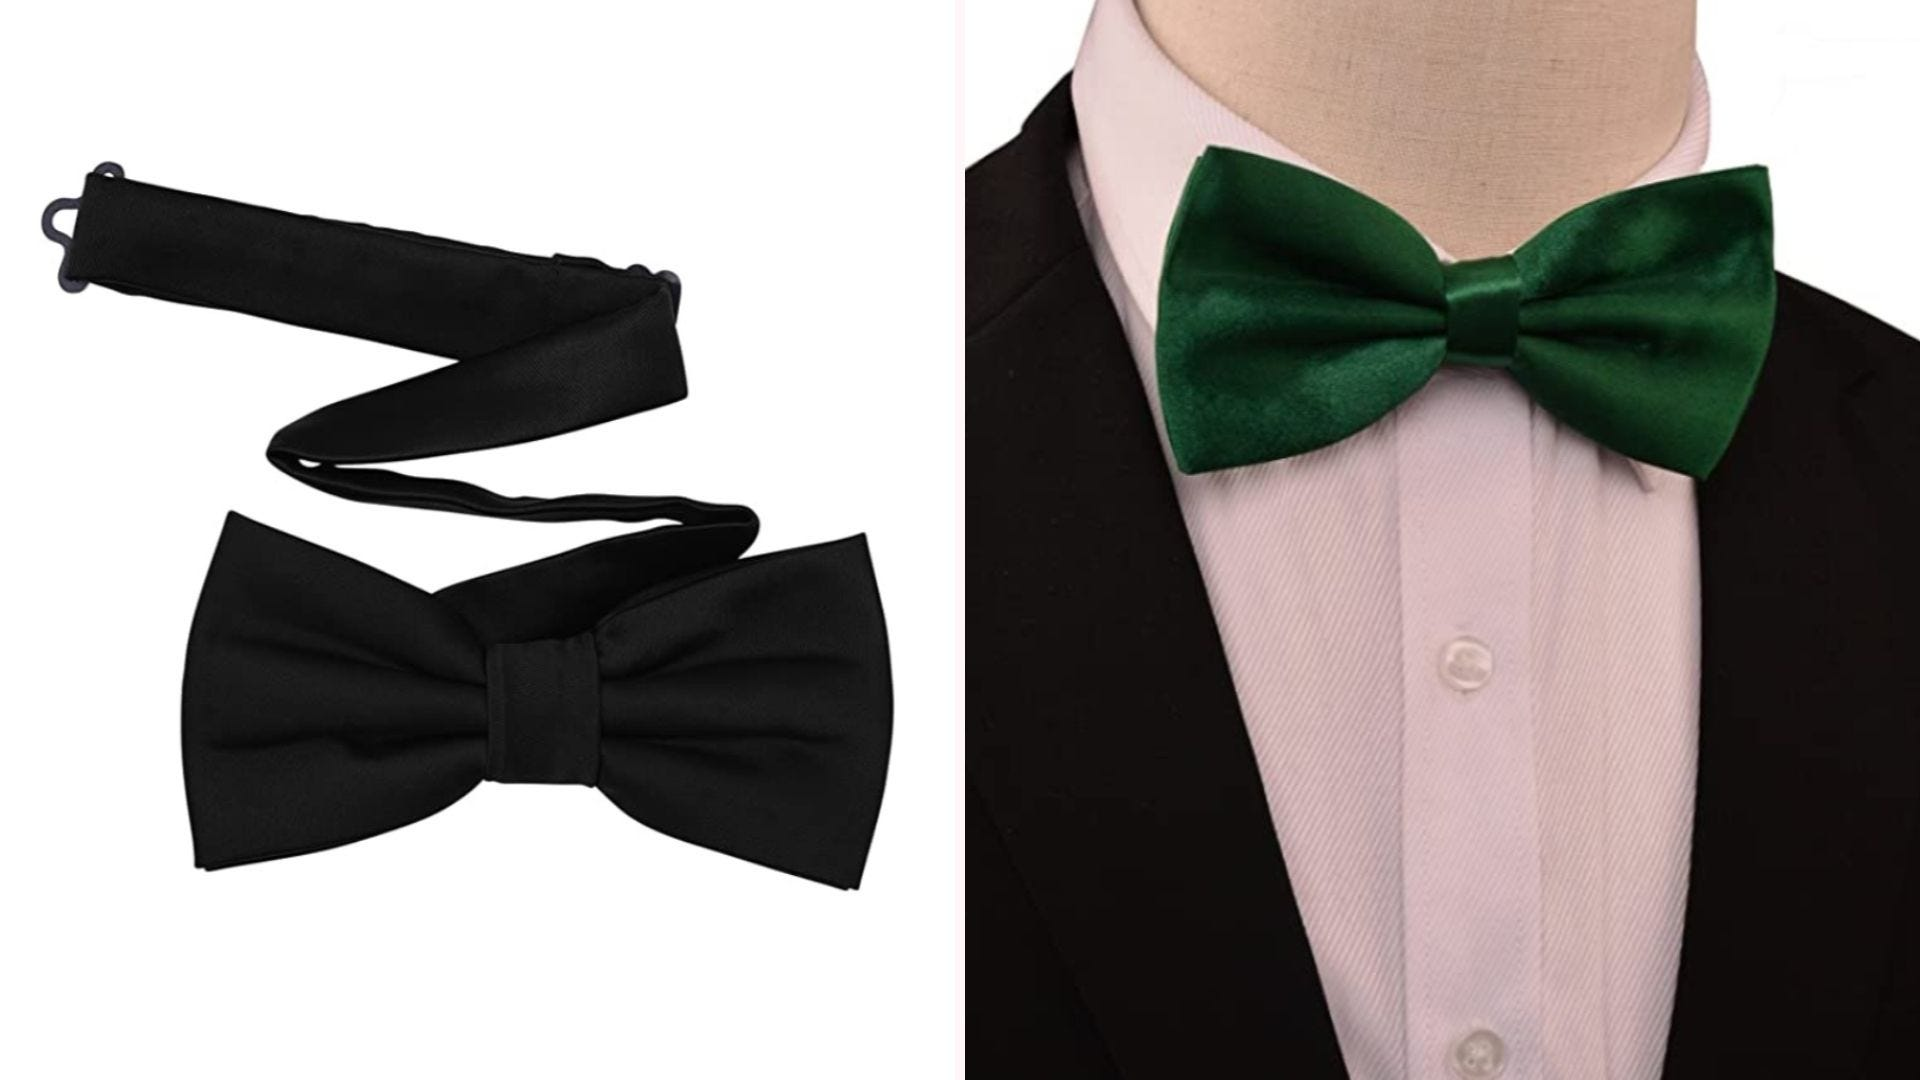 On the left, a black pre-tied bow tie with a strap. On the right, a mannequin wears a suit with a green bow tie.